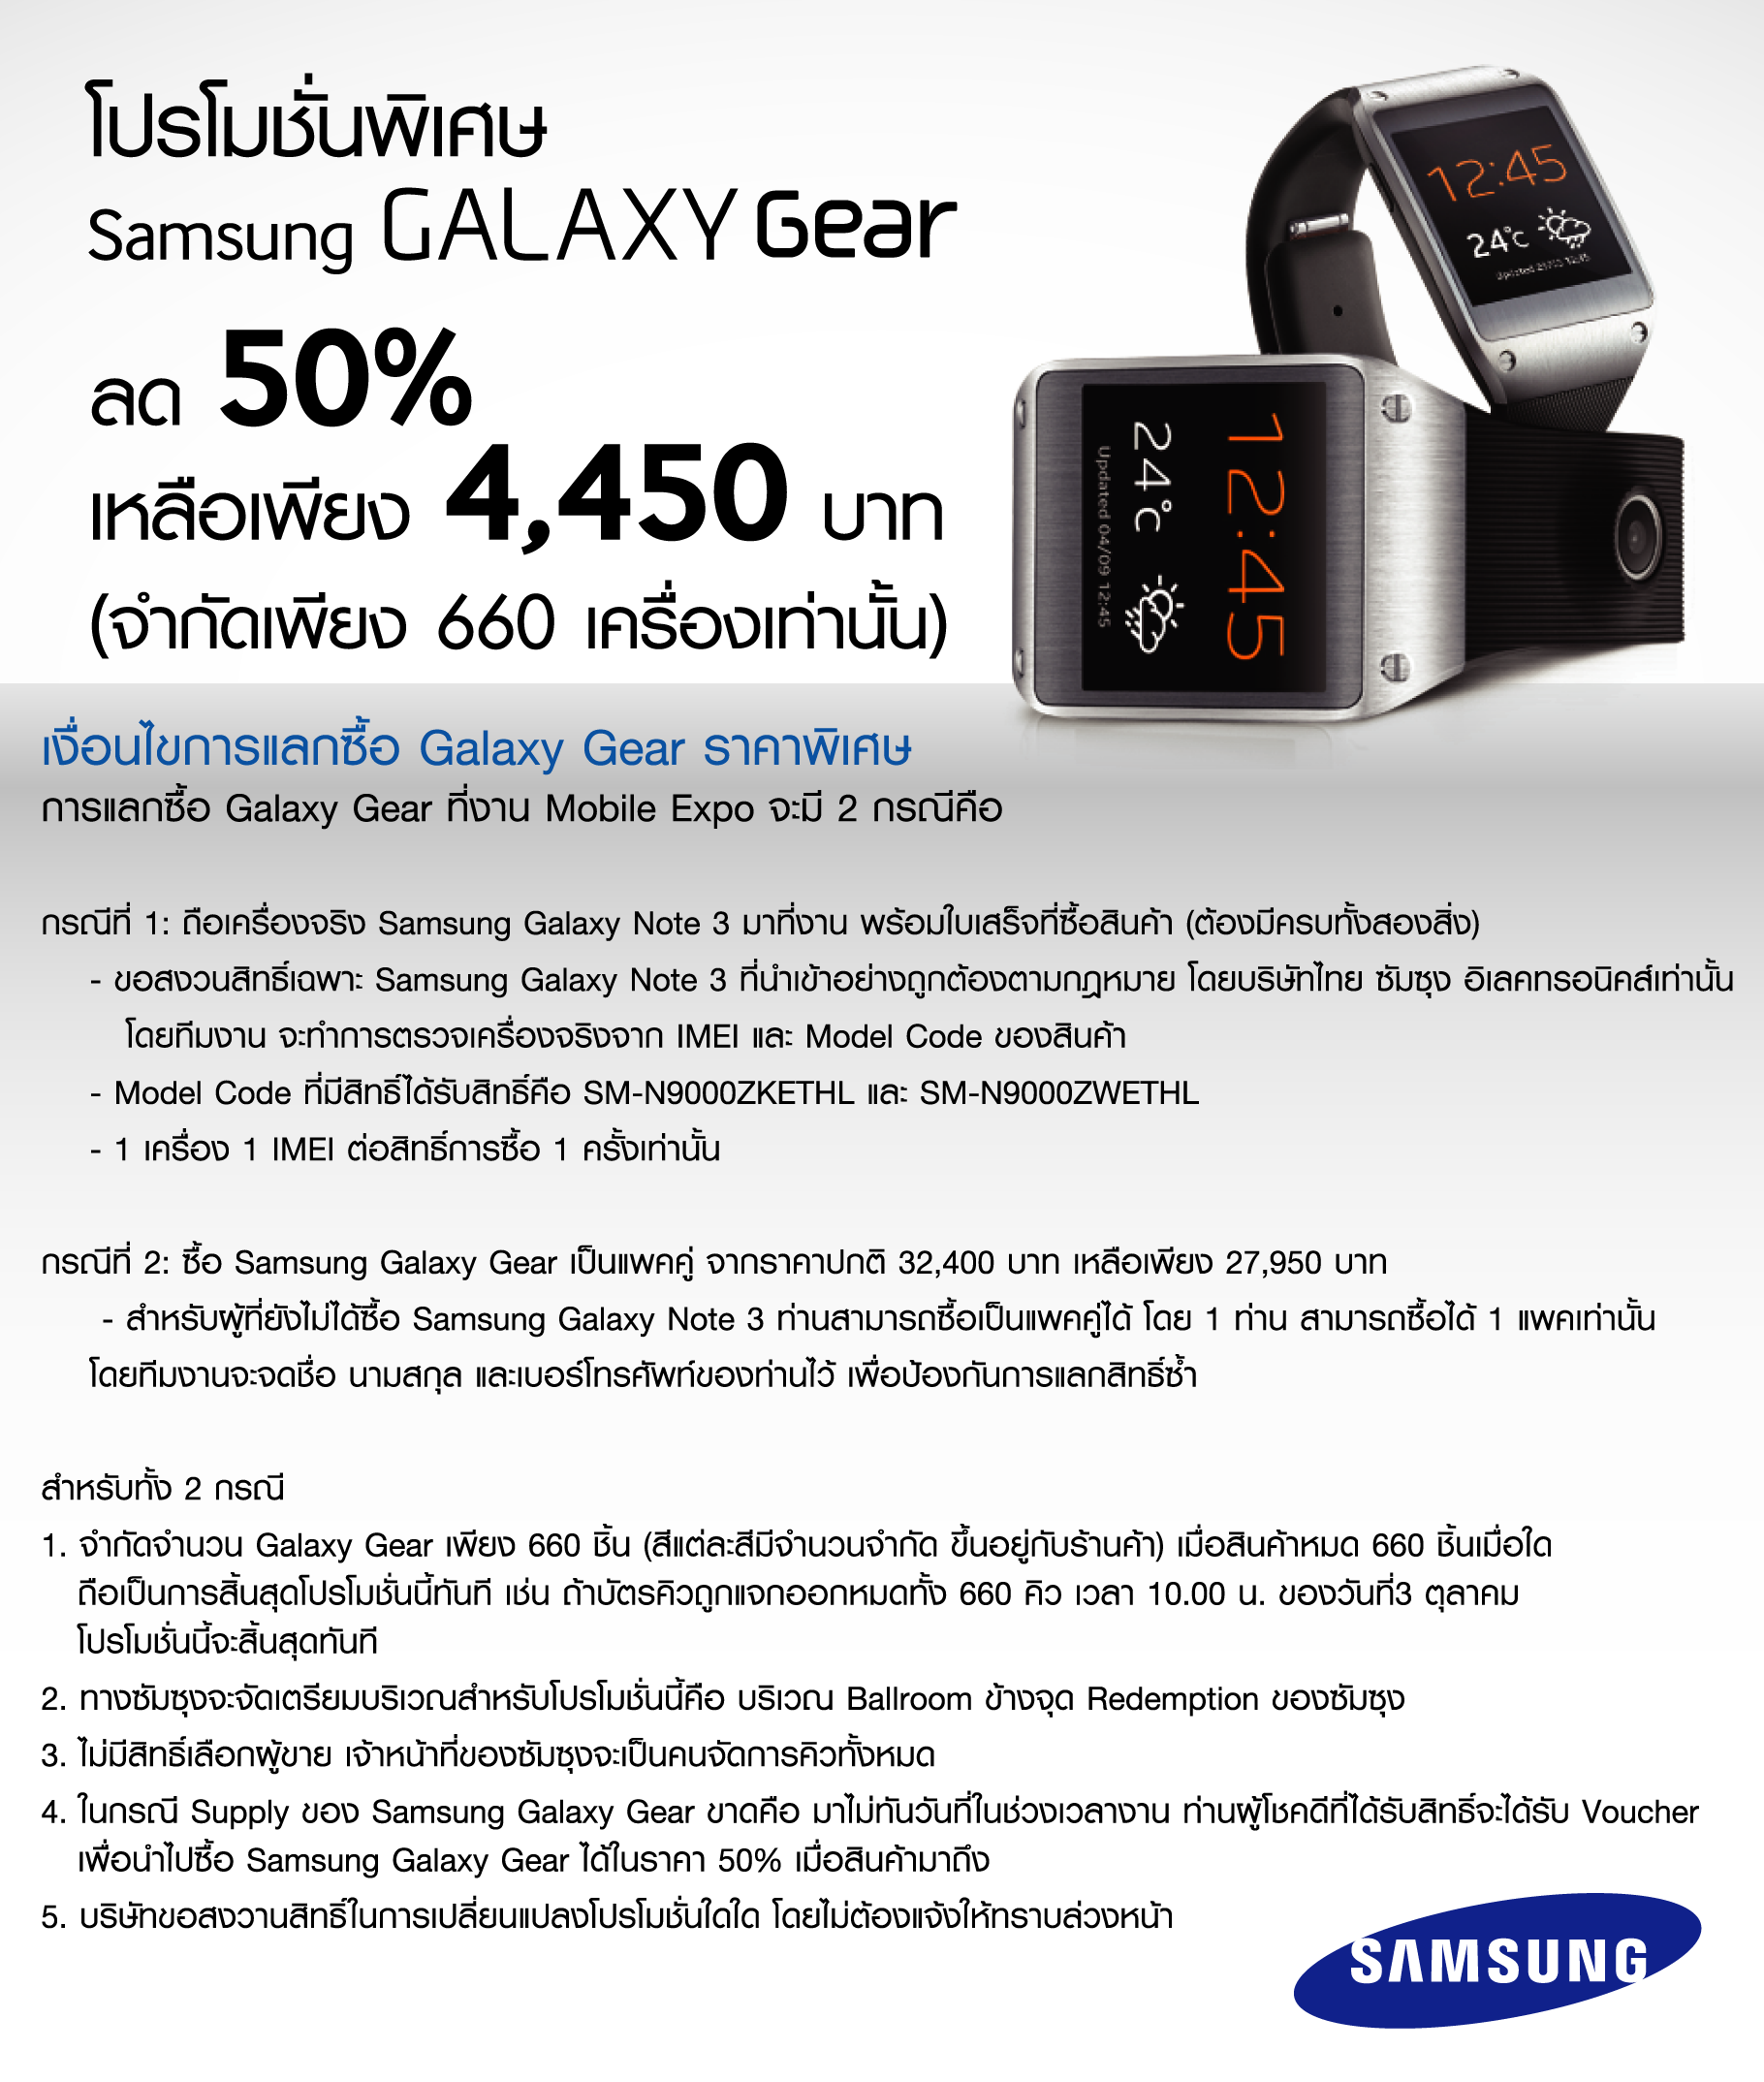 AW Galaxy Gear Promotion at TME